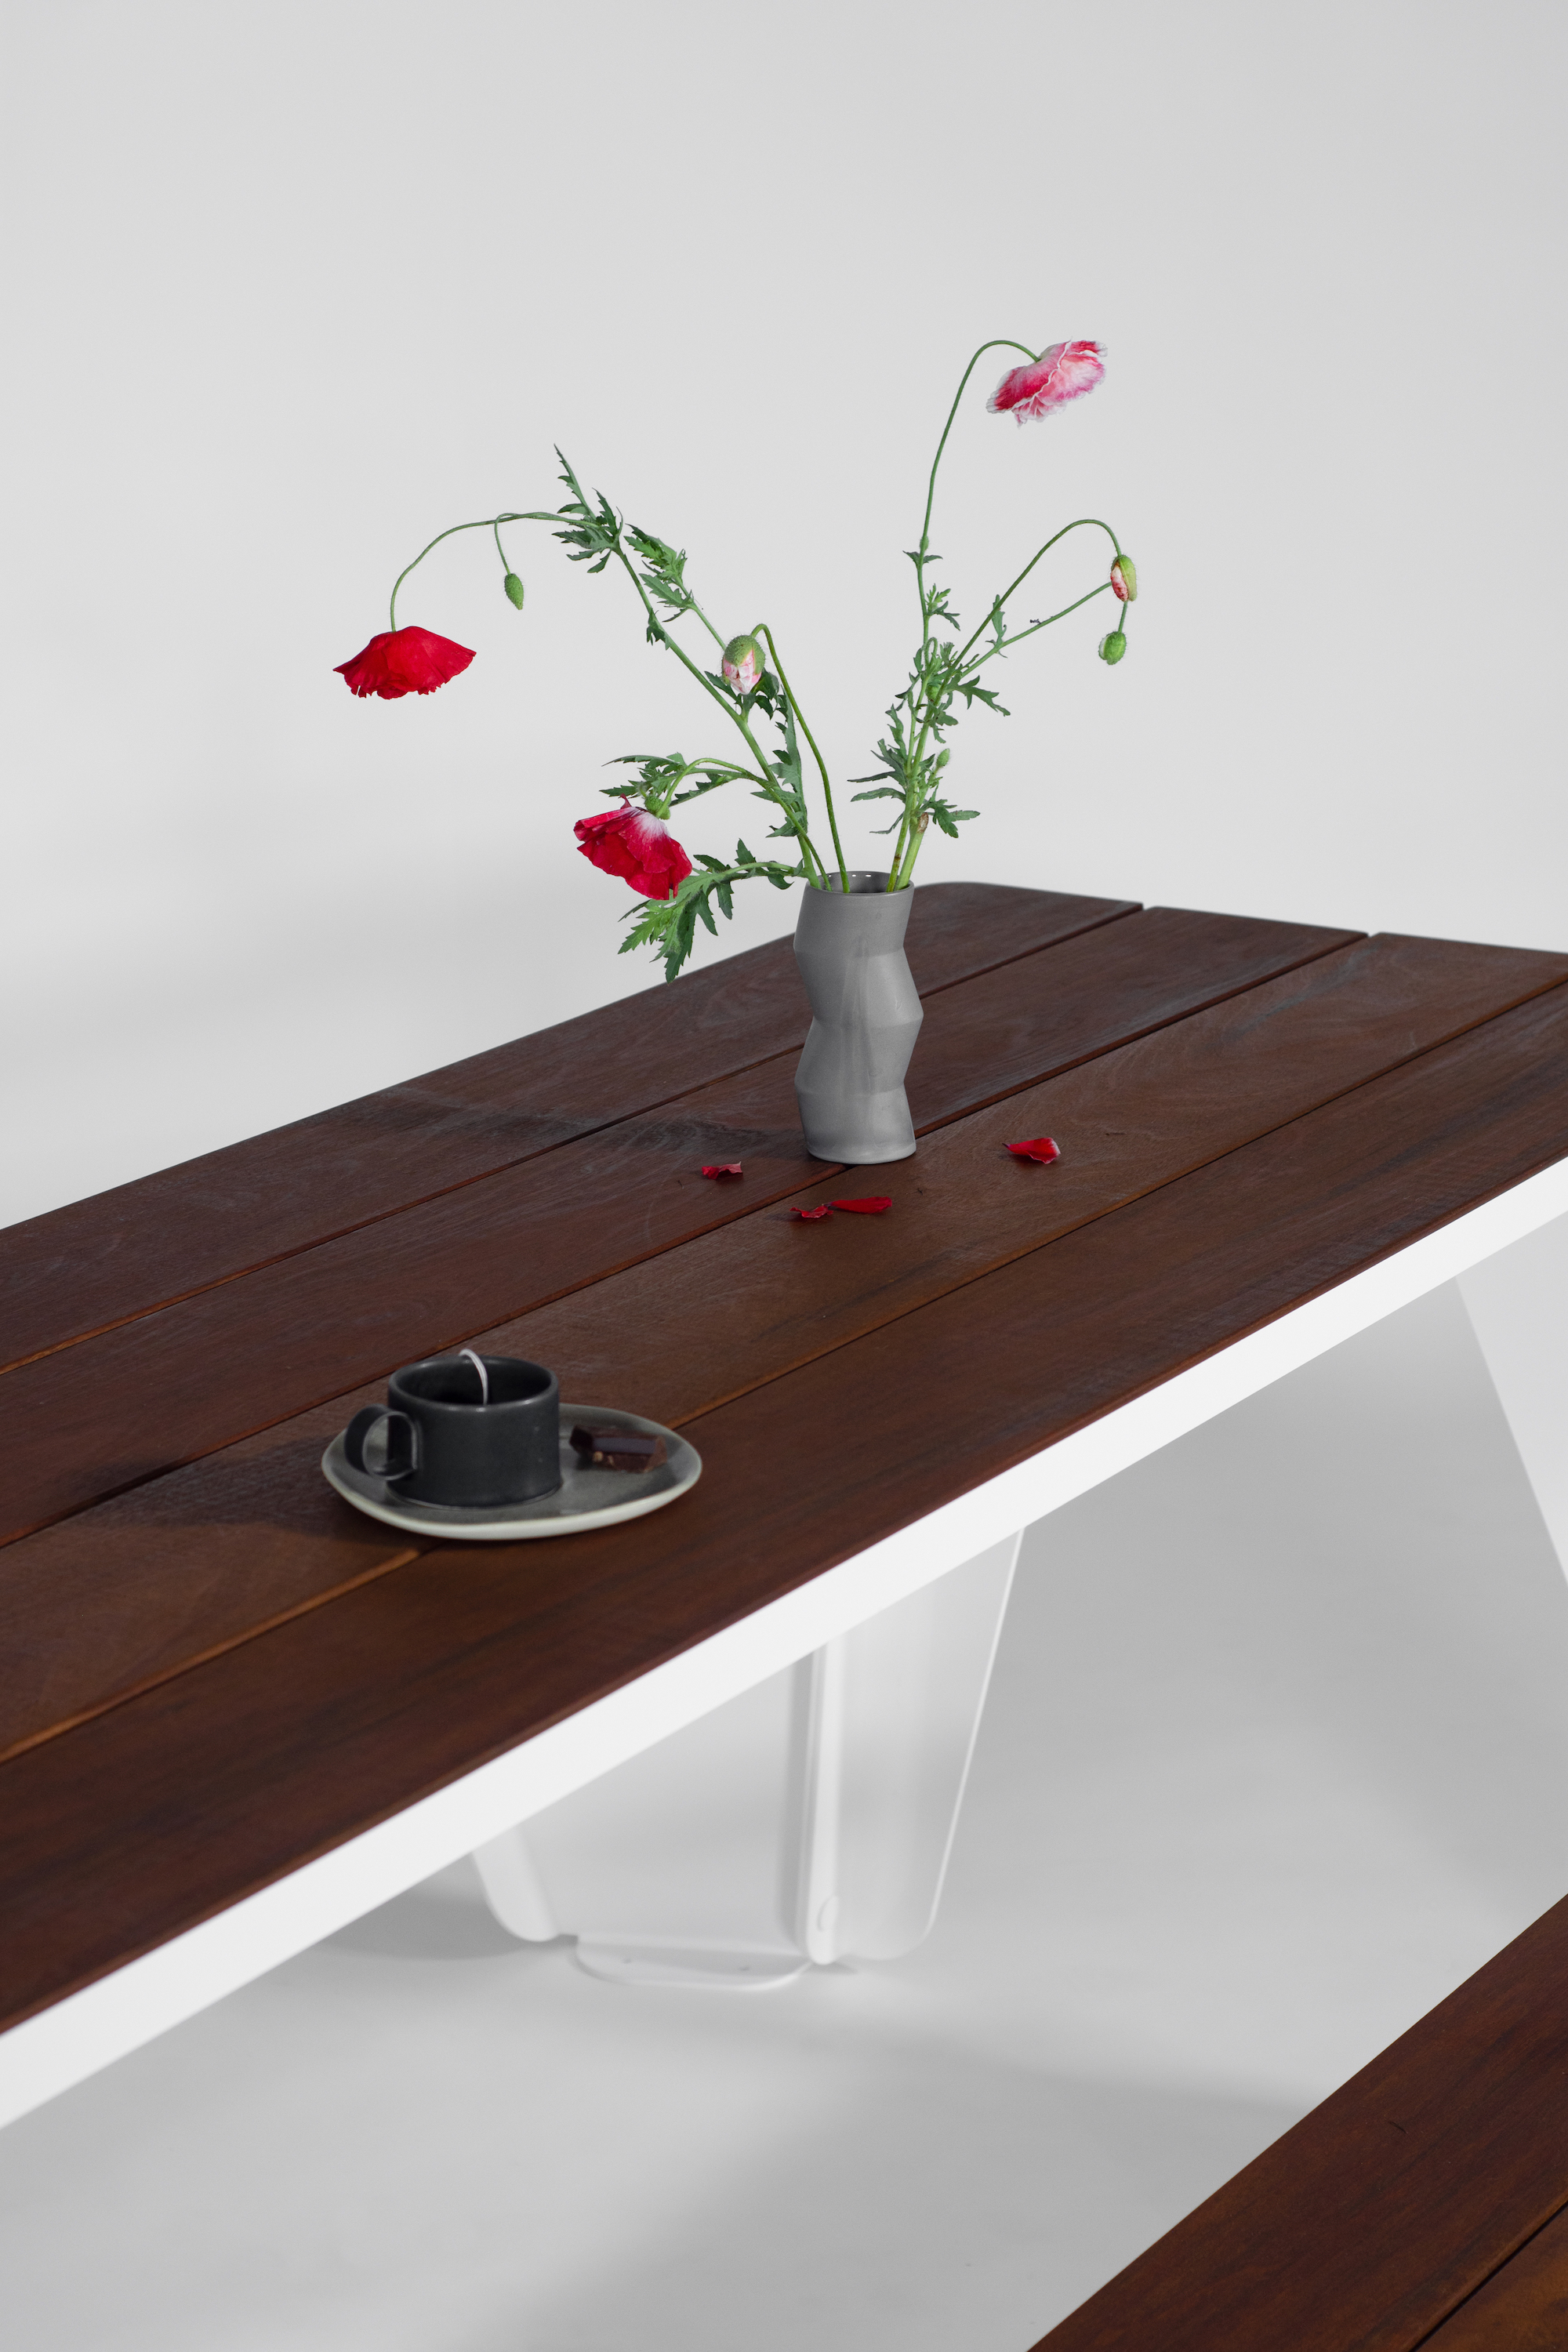 Rambler picnic table bench Ipe White, Outdoor table with vase and flowers